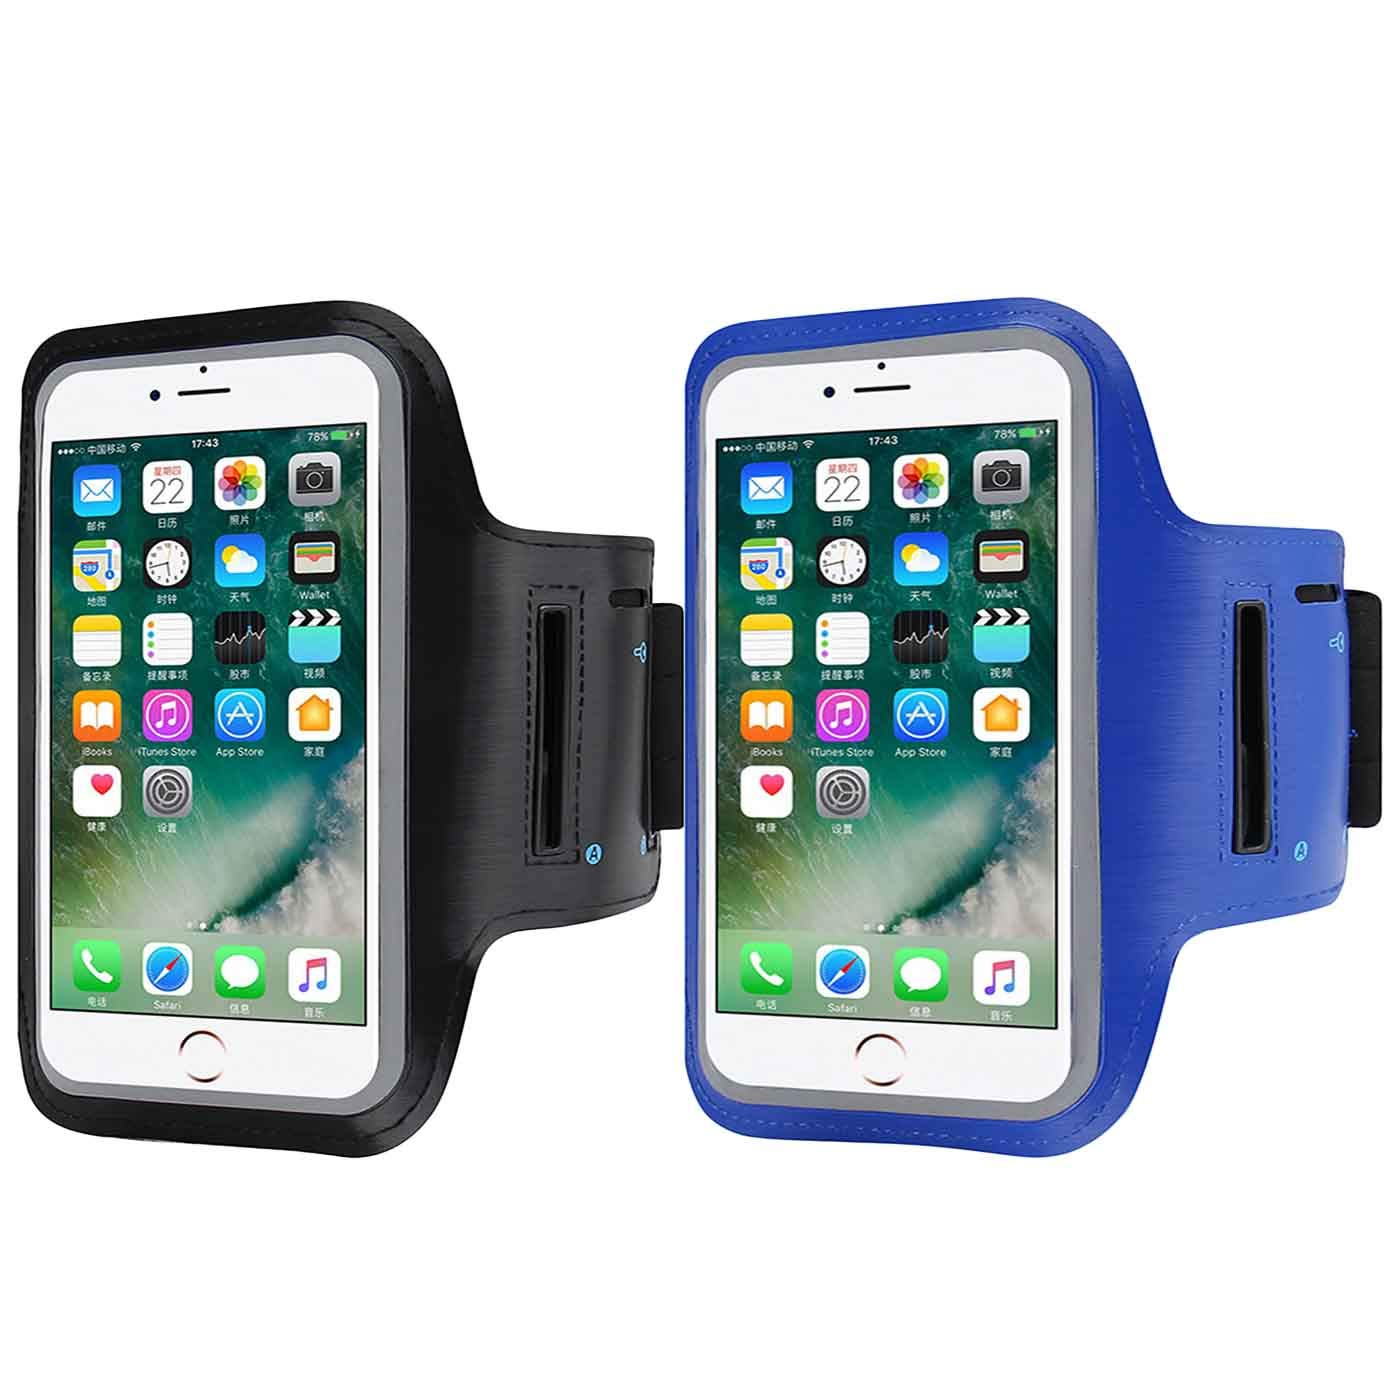 2 Pack Armband Sweatproof Running Armbag Gym Fitness Workout Cell Phone Case with Key Holder Compatible with iPhone X//XS//XS MAX//XR// 8 7 6 6s Plus Samsung Galaxy S9 S8 Edge,Diagonal 5.3~6.0-Black